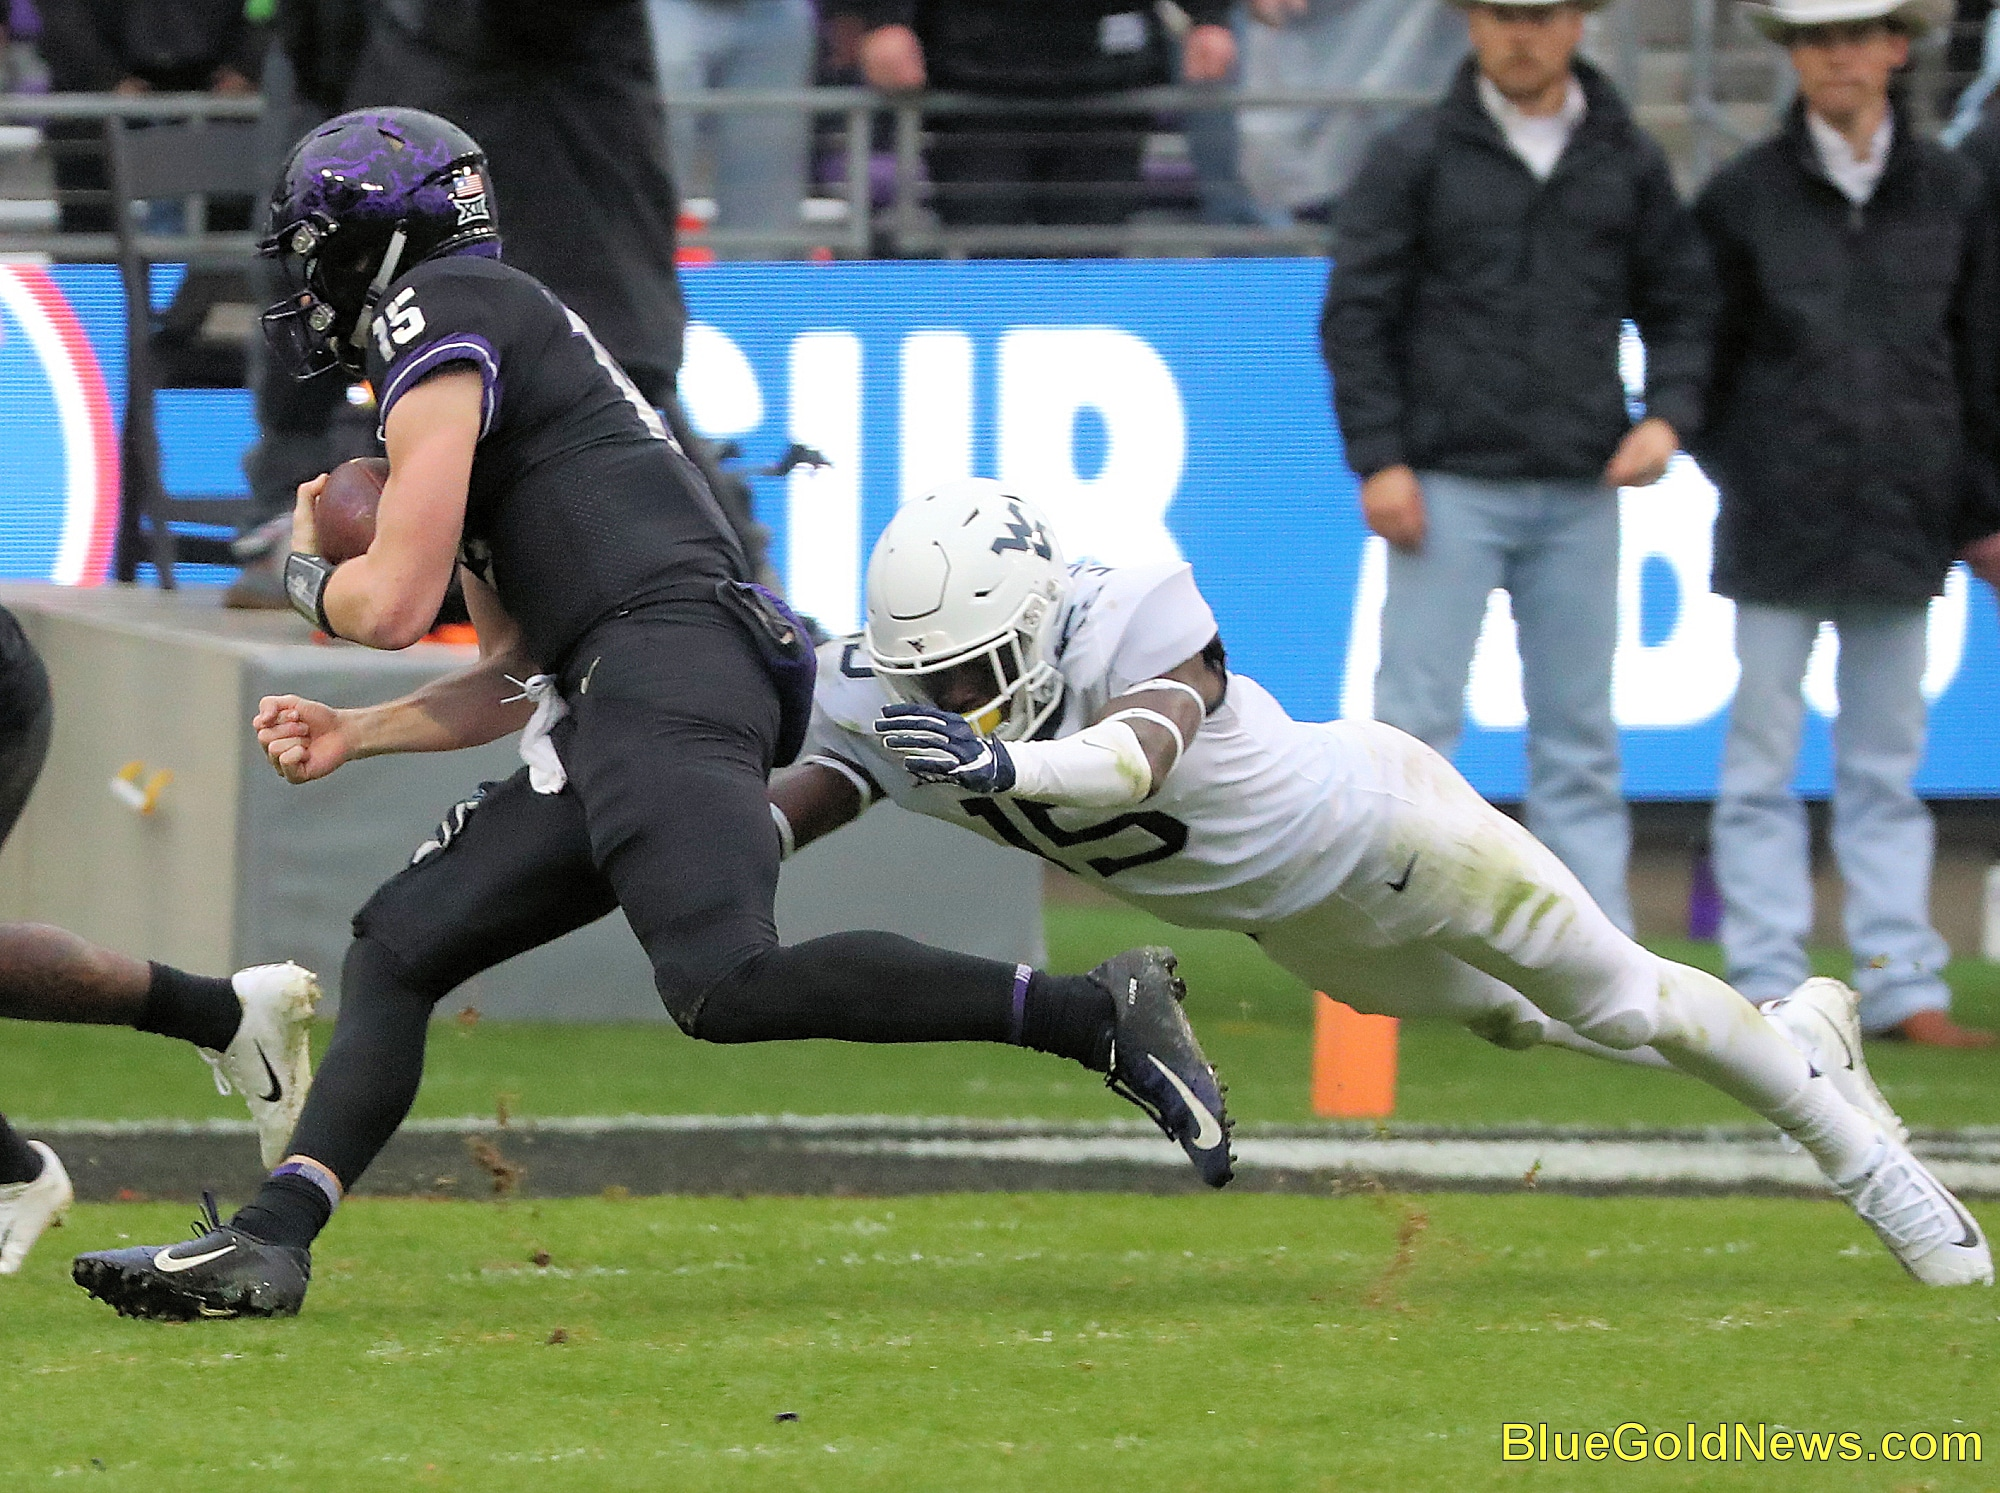 West Virginia safety Kerry Martin makes a diving tackle of TCU's Max Duggan (15)